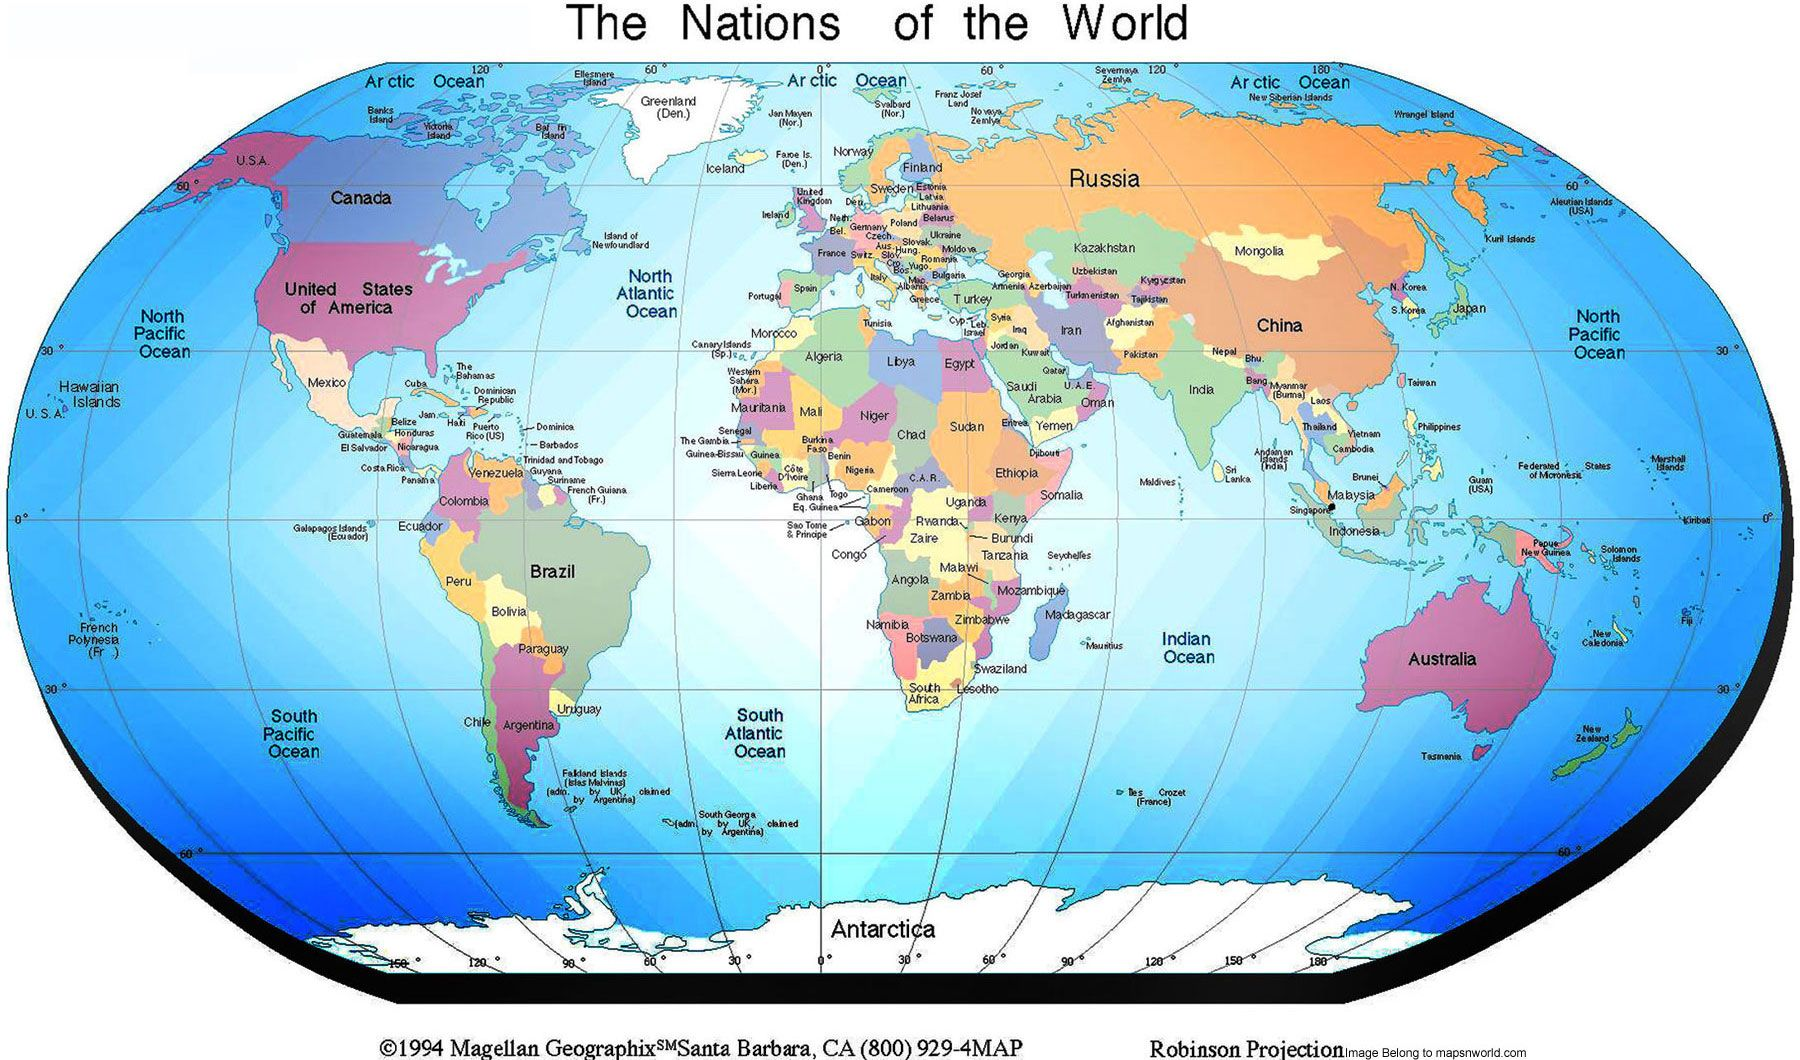 Earth Global Map 12 Outline Countries Royalty Free In Of ... on global telecommunications provider, global nepal map, global wine map, global air traffic control map, europe map, global sports map, global technology map, global map south africa, global information systems, global christianity map, new zealand global map, earth real-time wind map, global earth, global risk game map, current global weather map, global population distribution map, global political map, global culture map, global time map, global temperature rise,